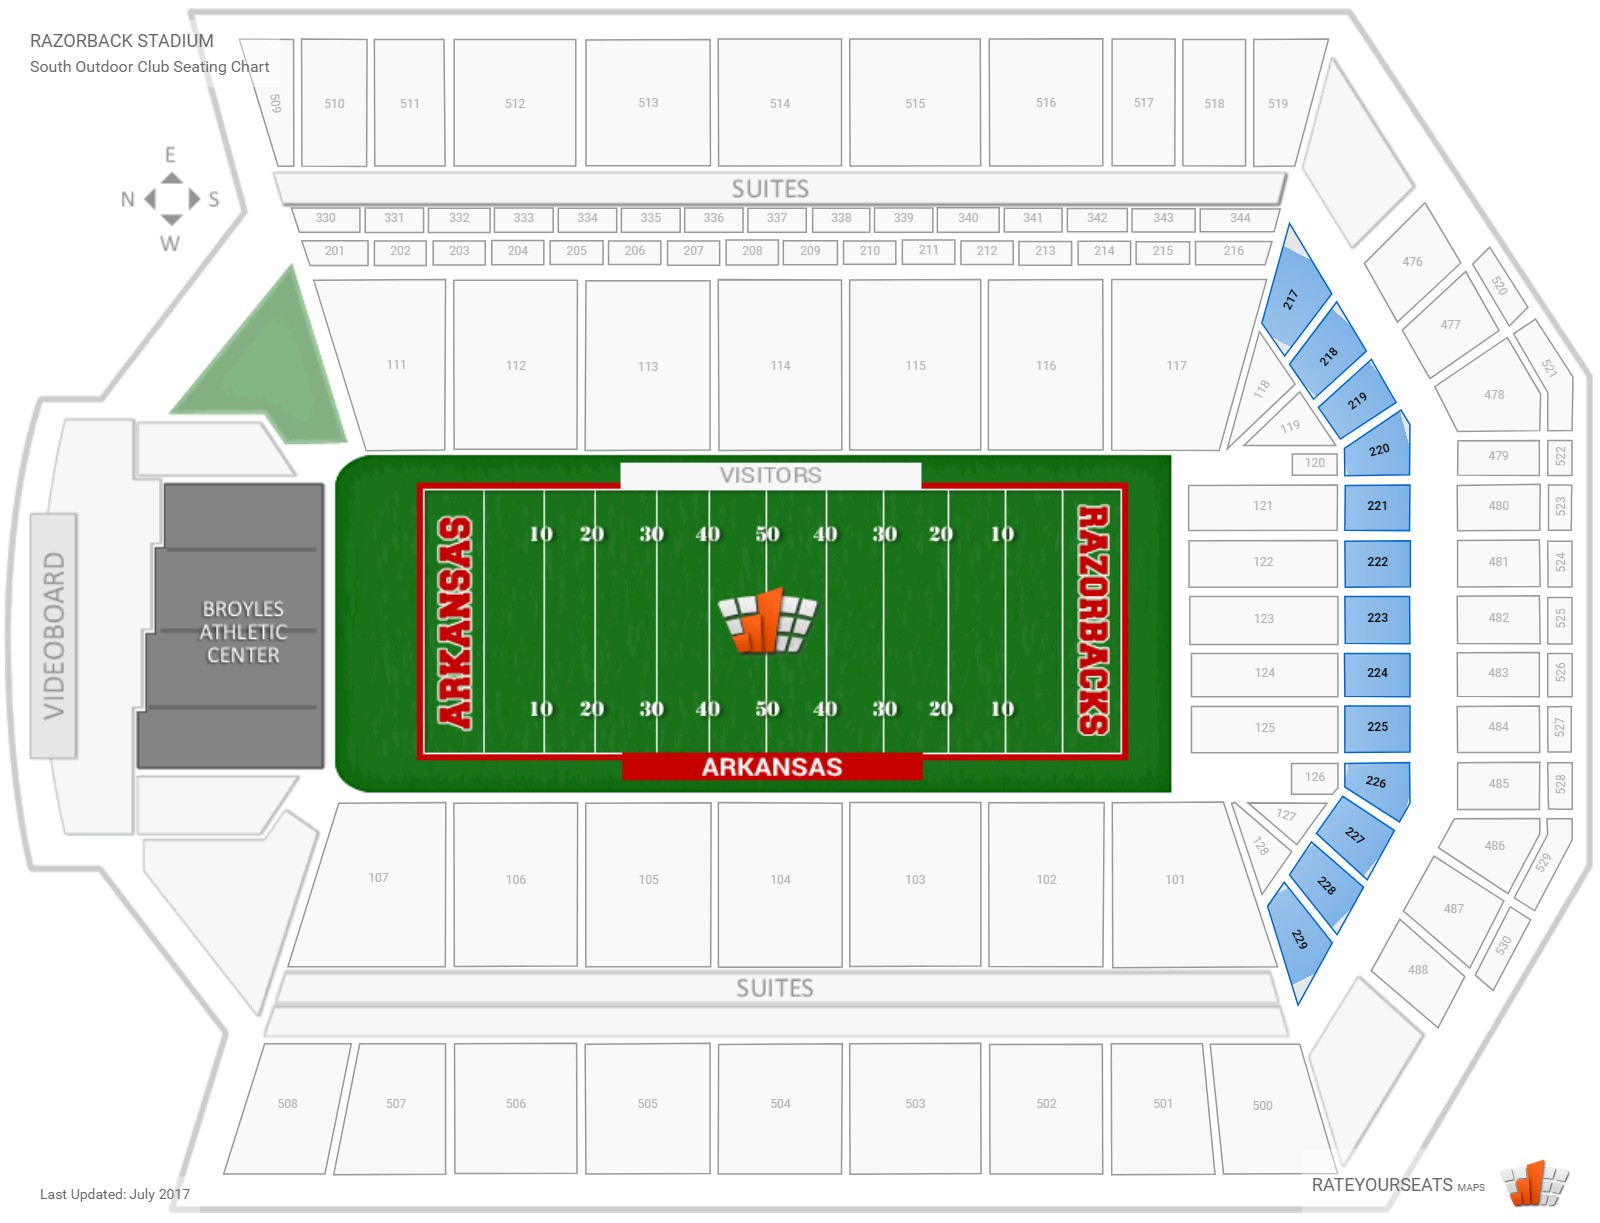 Razorback Stadium South Outdoor Club seating chart